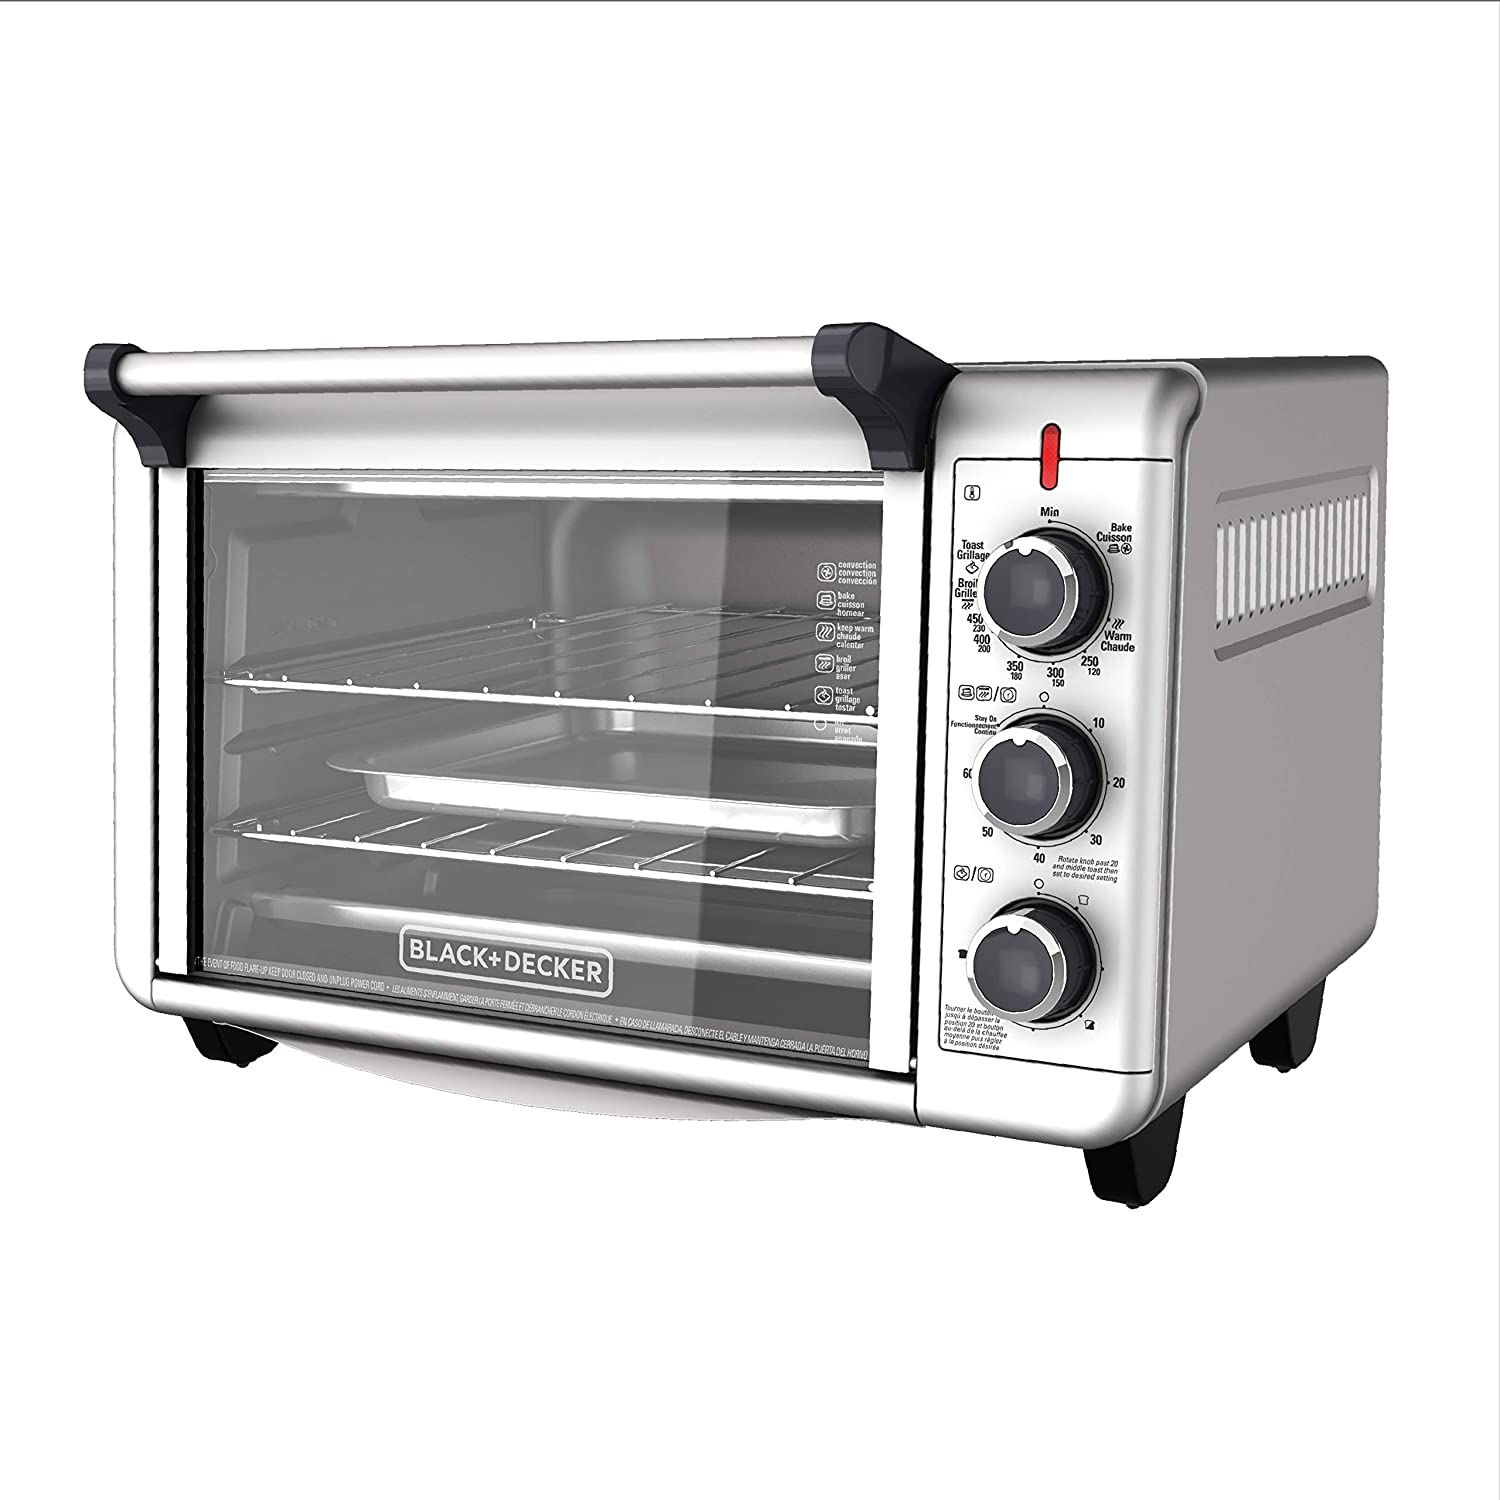 BLACK+DECKER TO3000G 6-Slice Convection Countertop Toaster Oven - Silver